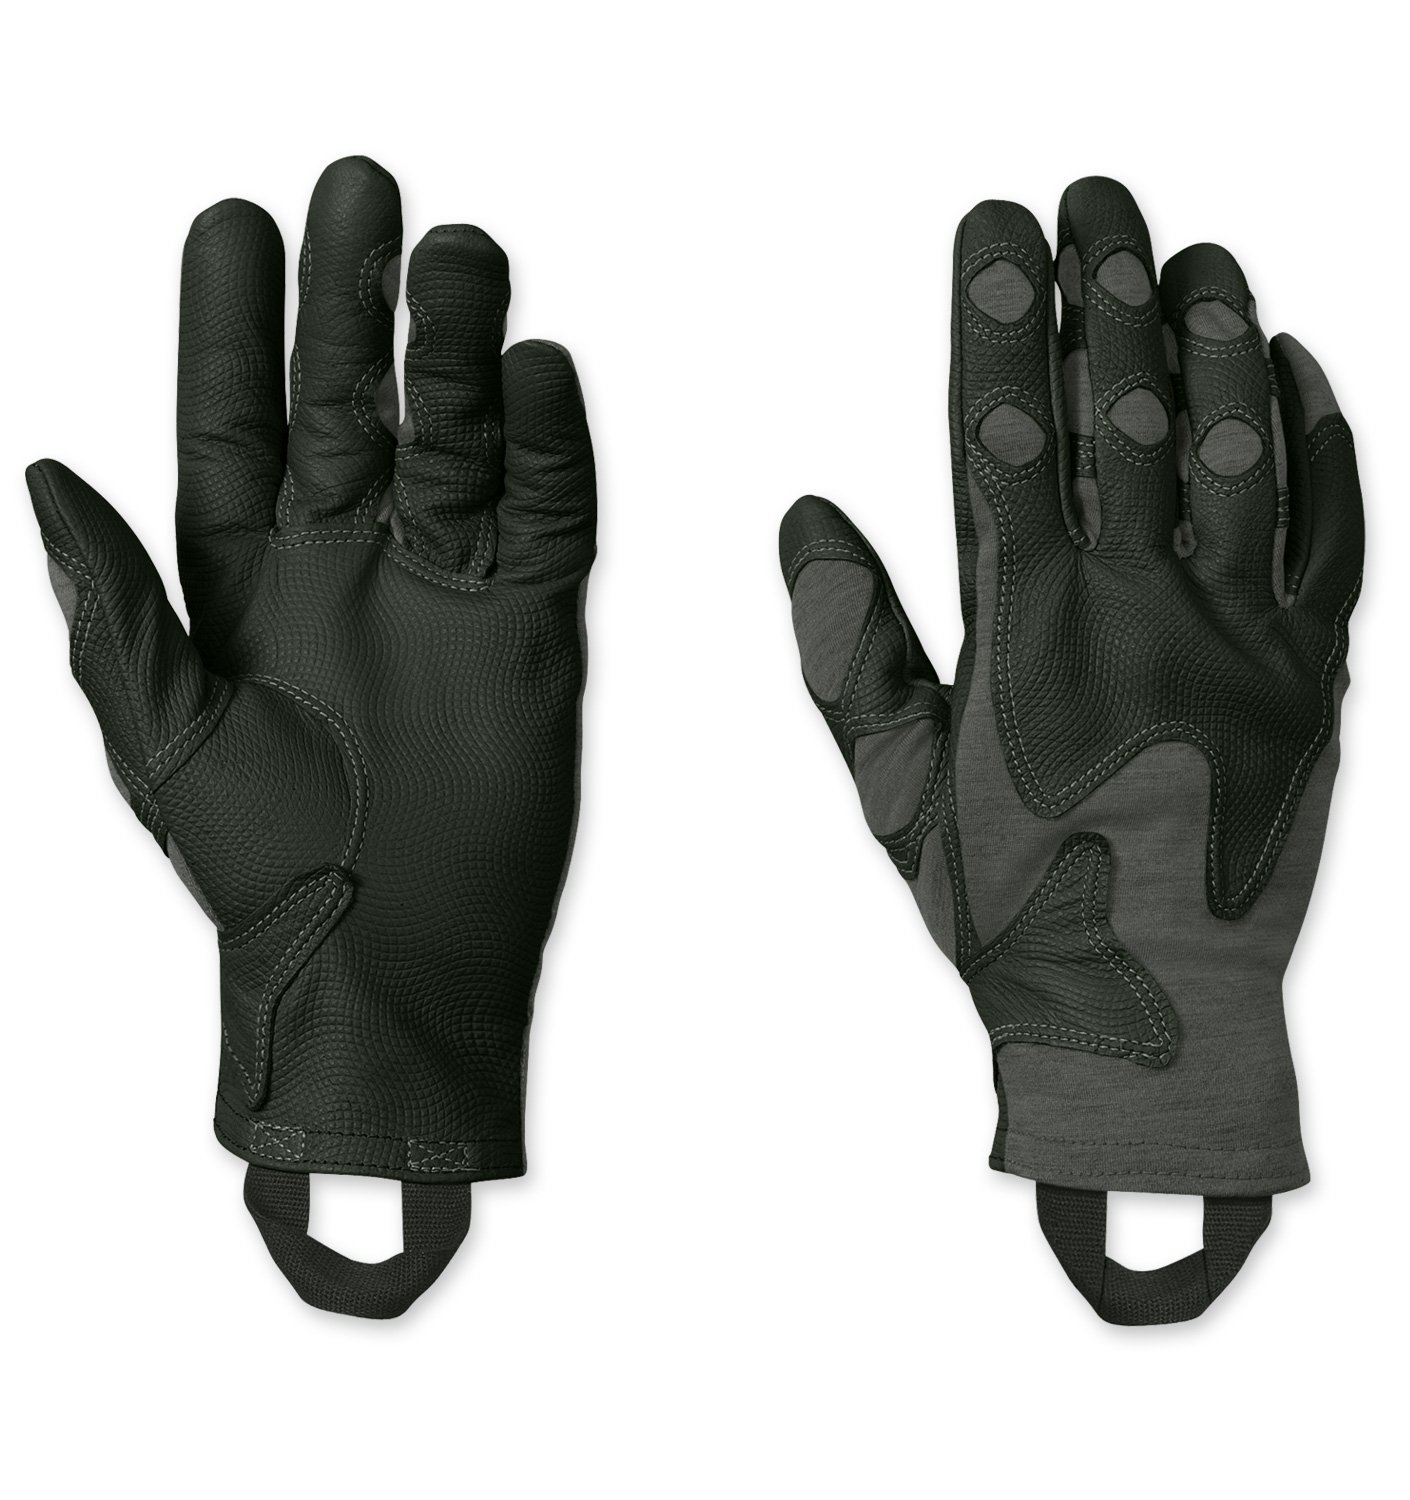 Outdoor Research  Men's Overlord Short Gloves (S14), Foliage Green, XXL